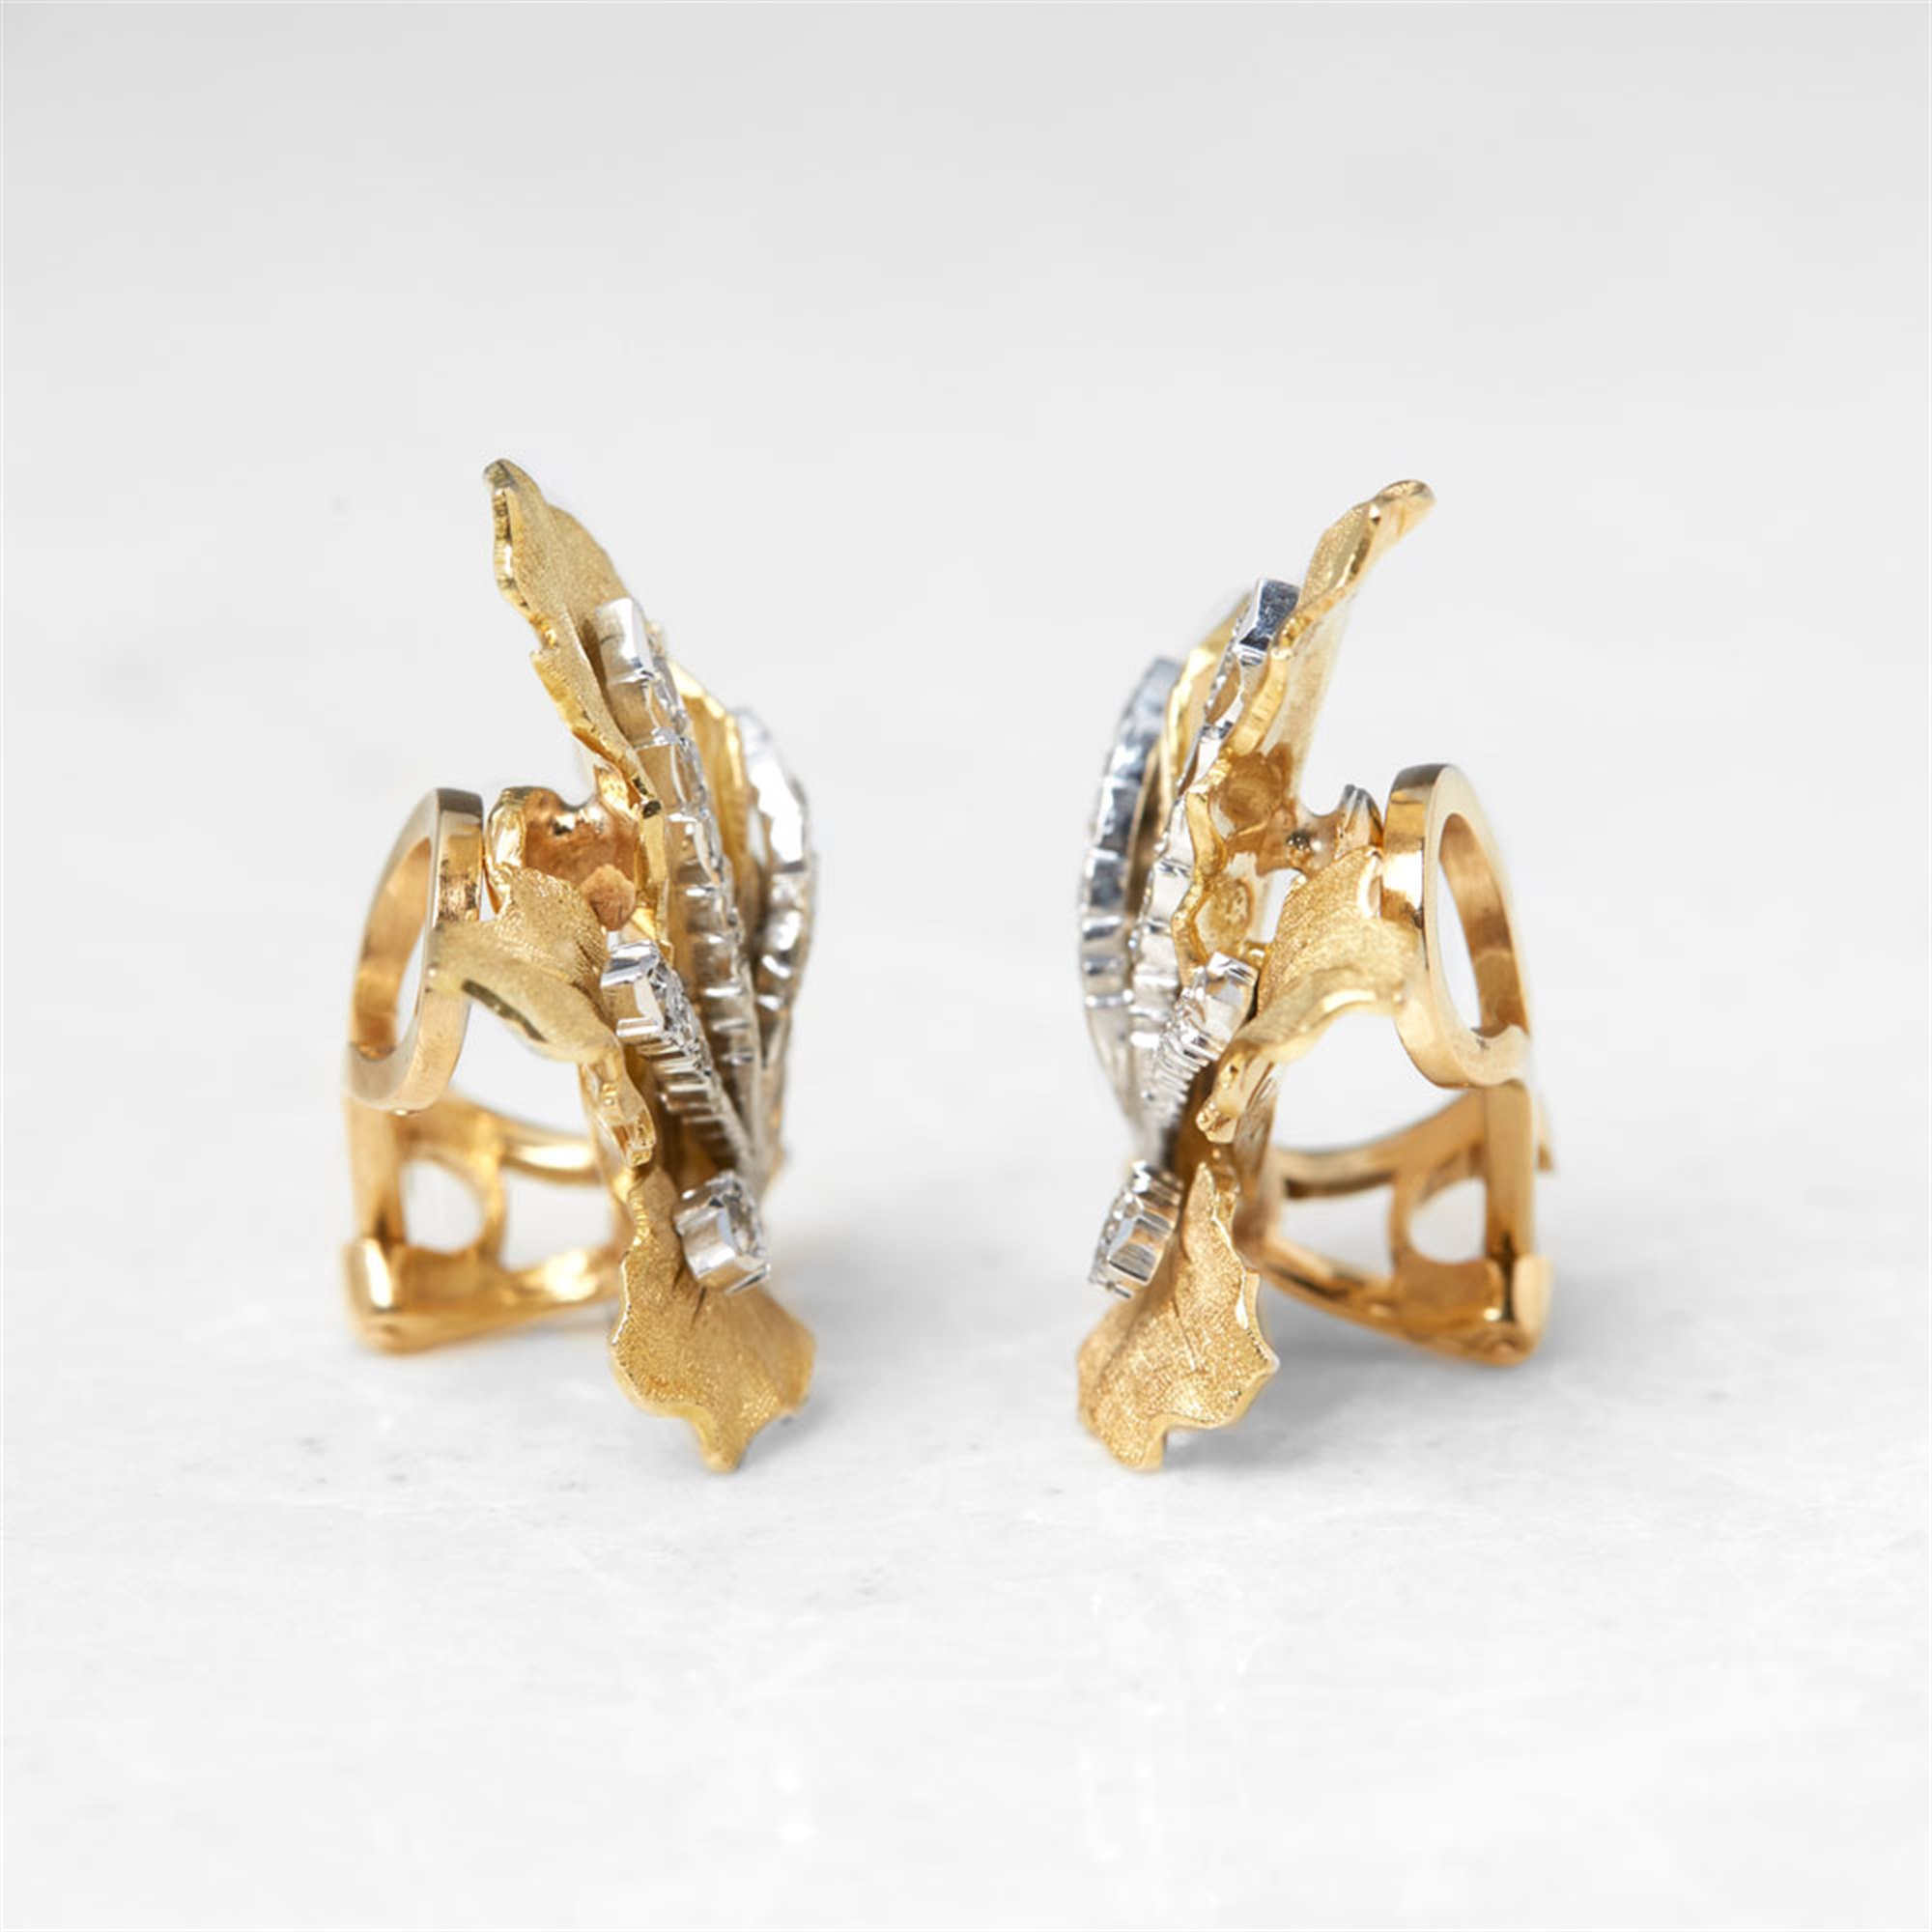 Buccellati 18k Yellow Gold Diamond Leaf Design Clip-On Earrings